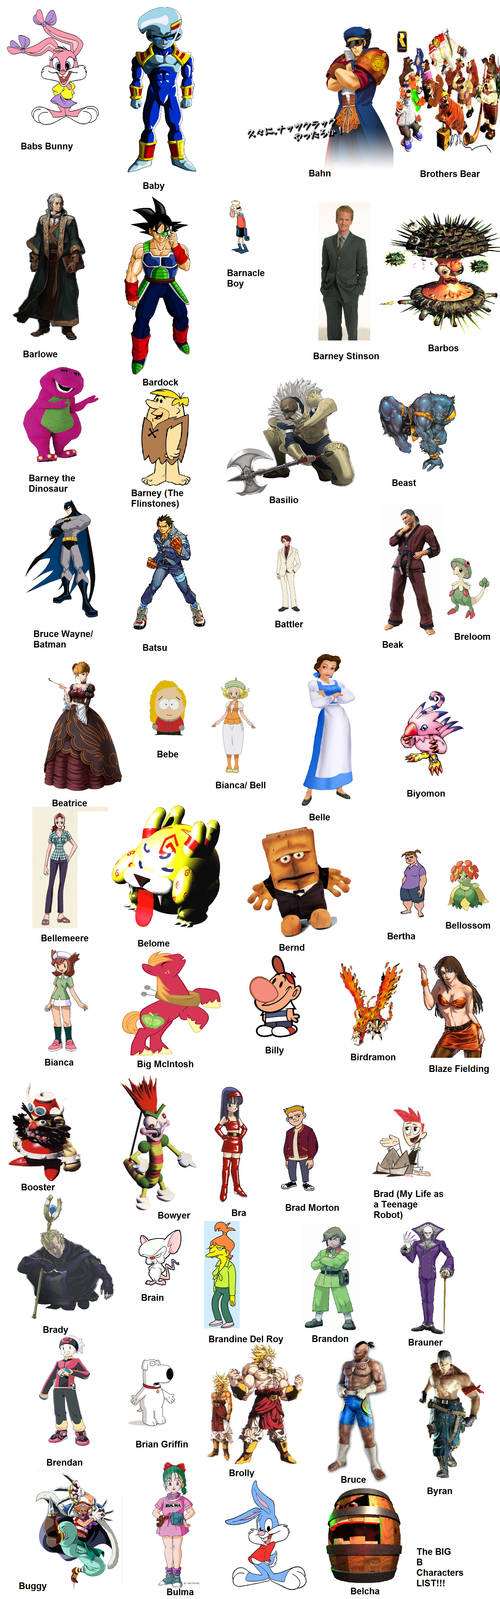 The Big B Characters List!!! by Austria-Gentleman